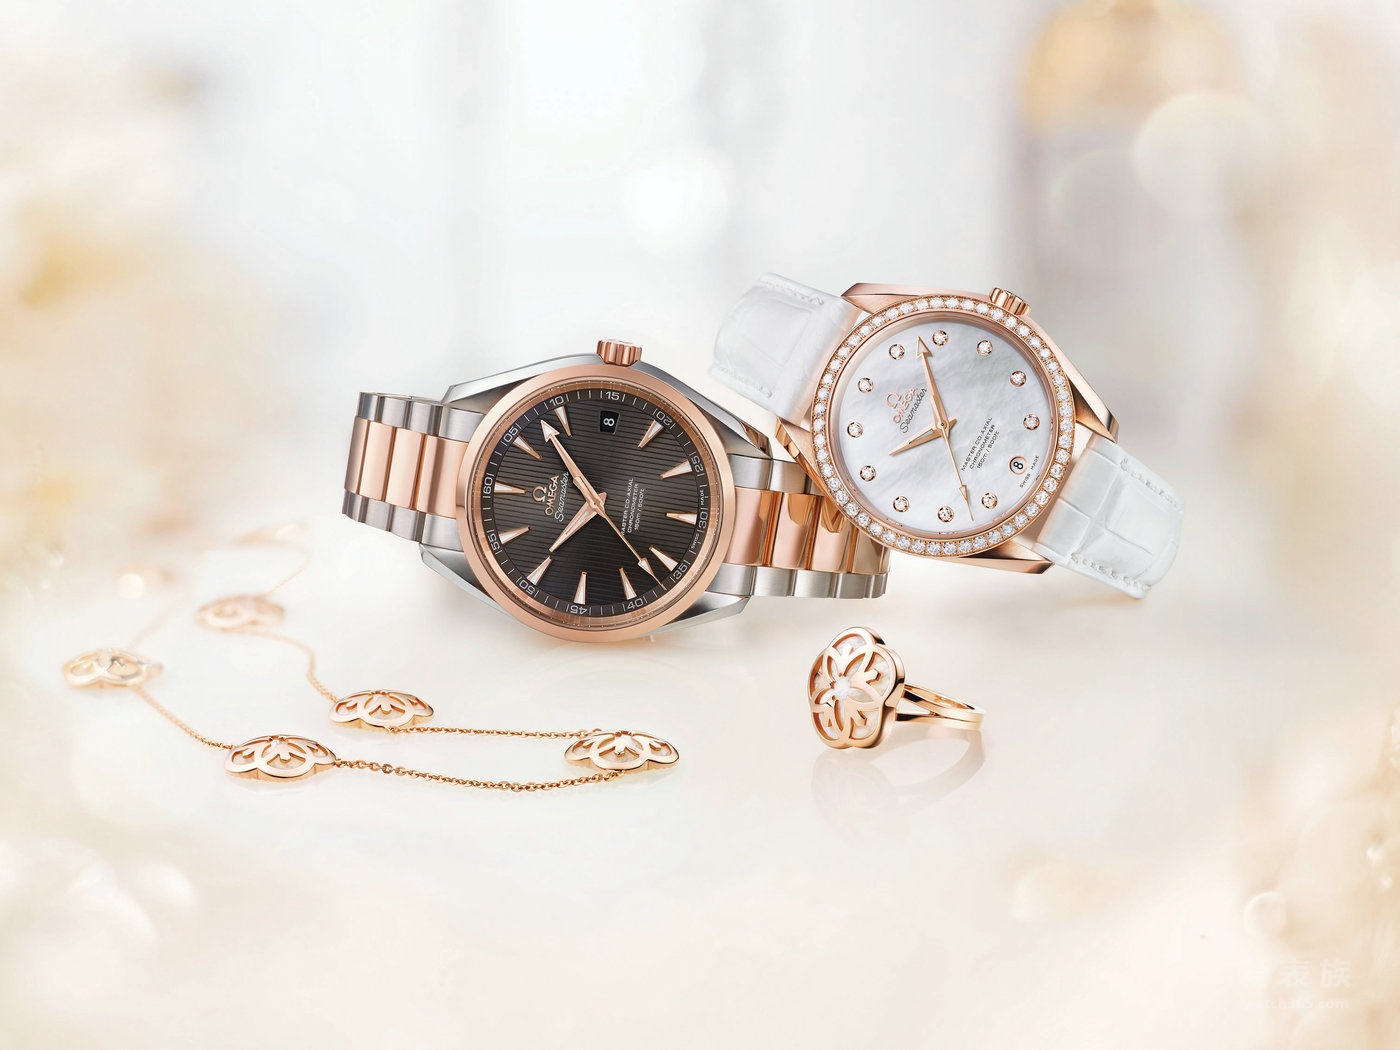 Omega replica watches 2016 Valentine's Day gift for girlfriend or boyfriend